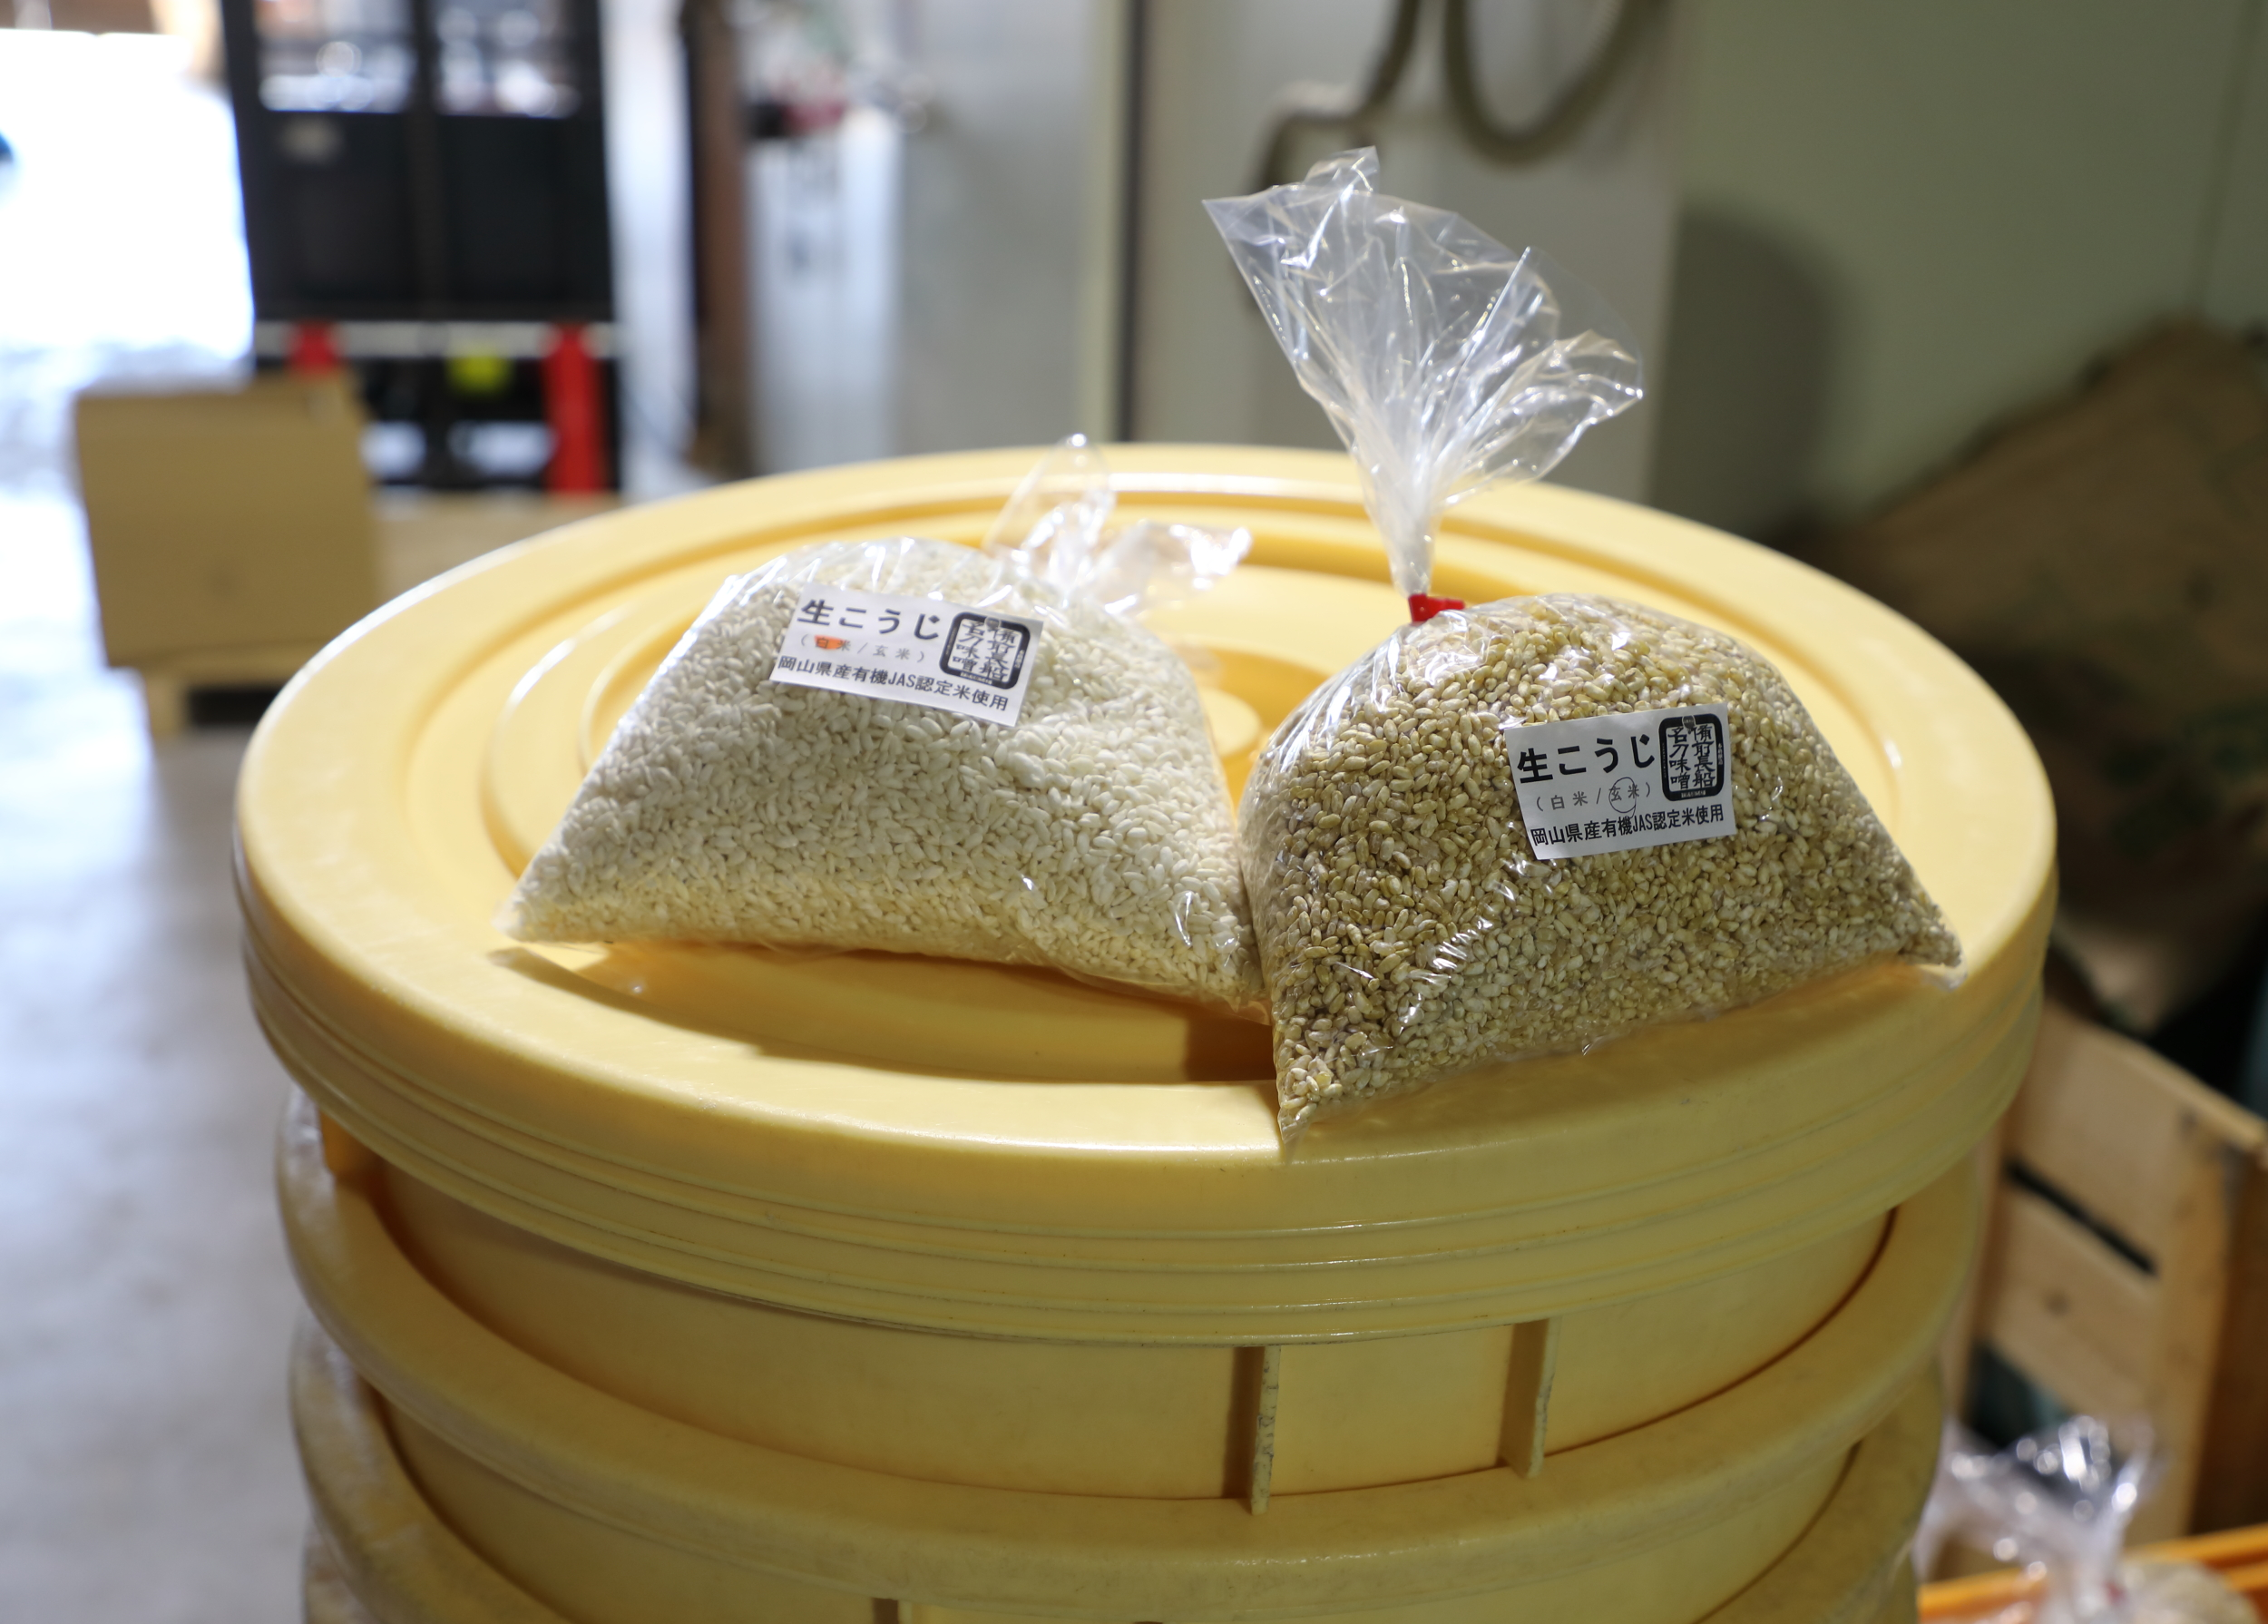 From right to left: one kilogram bags of fresh brown rice koji and white rice koji.